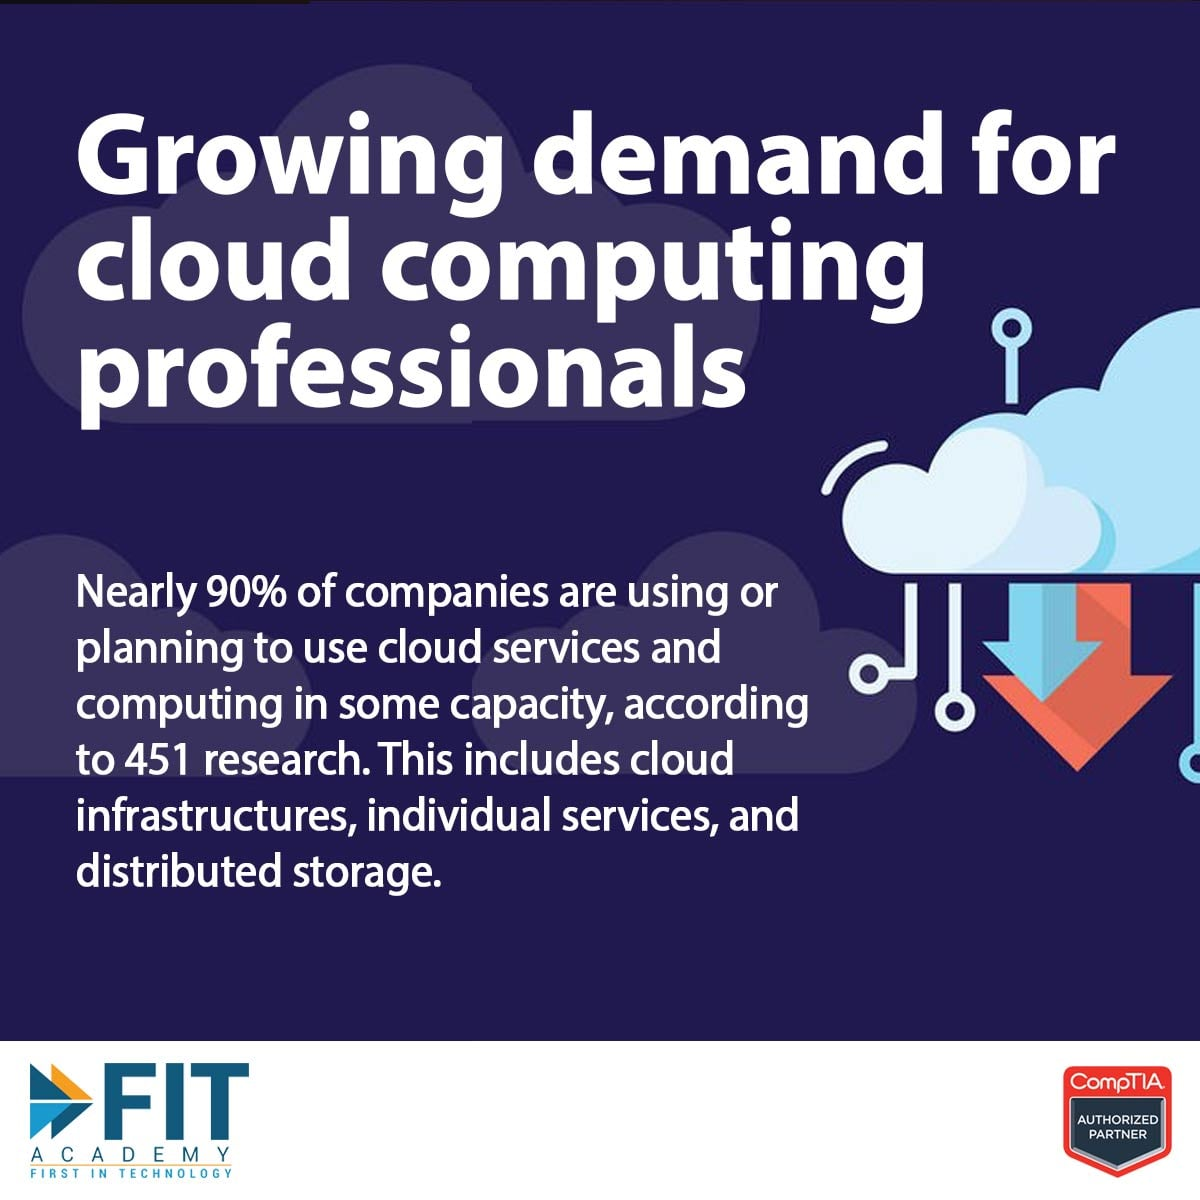 Growing demand for Cloud computing professionals